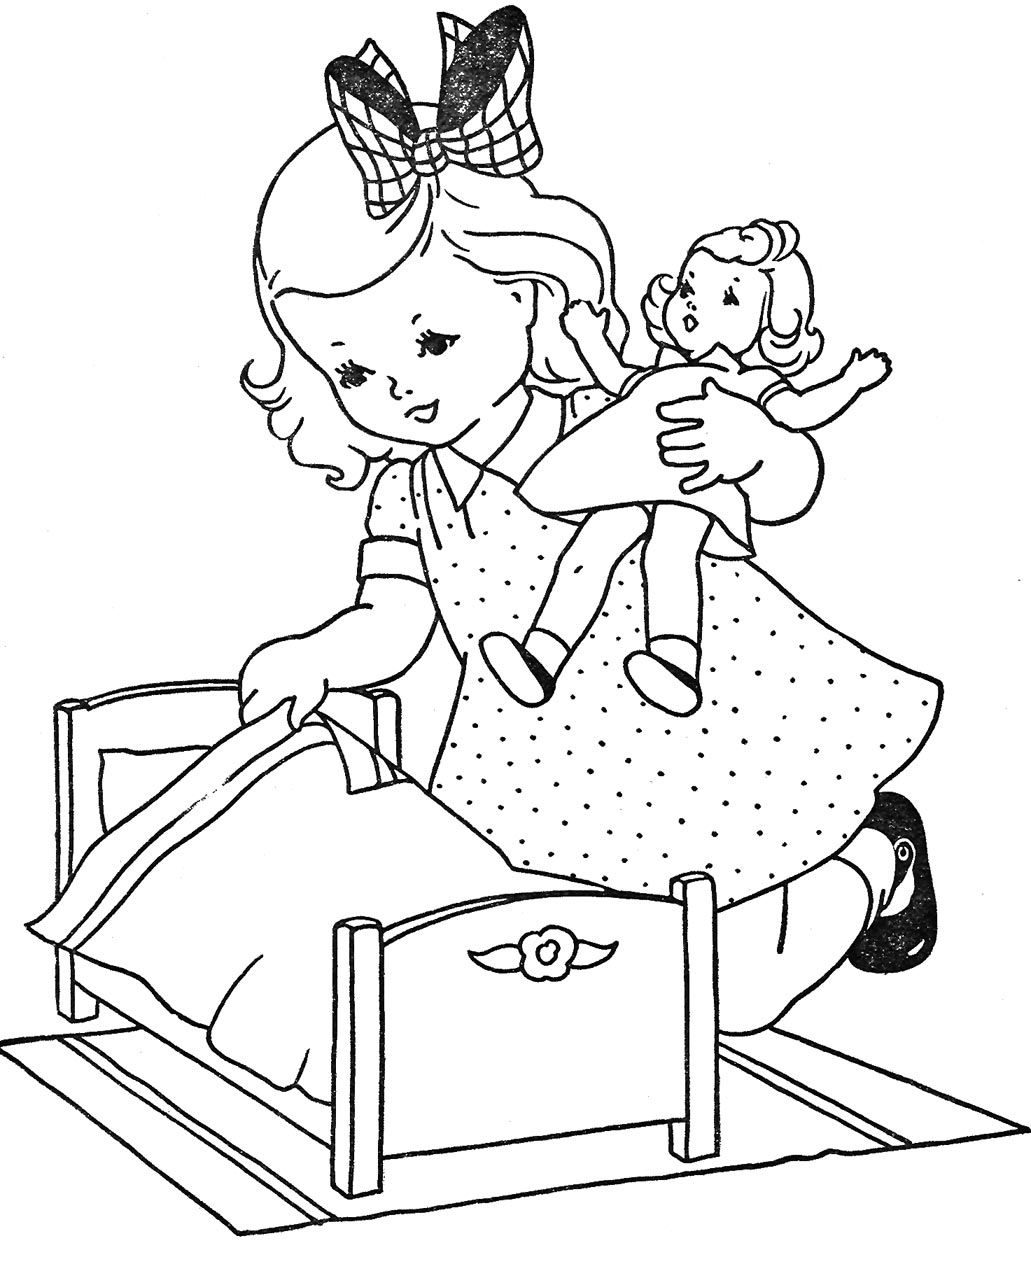 Cabbage Patch Kids Coloring Page 12 coloring page - Free Printable ... | 1264x1031